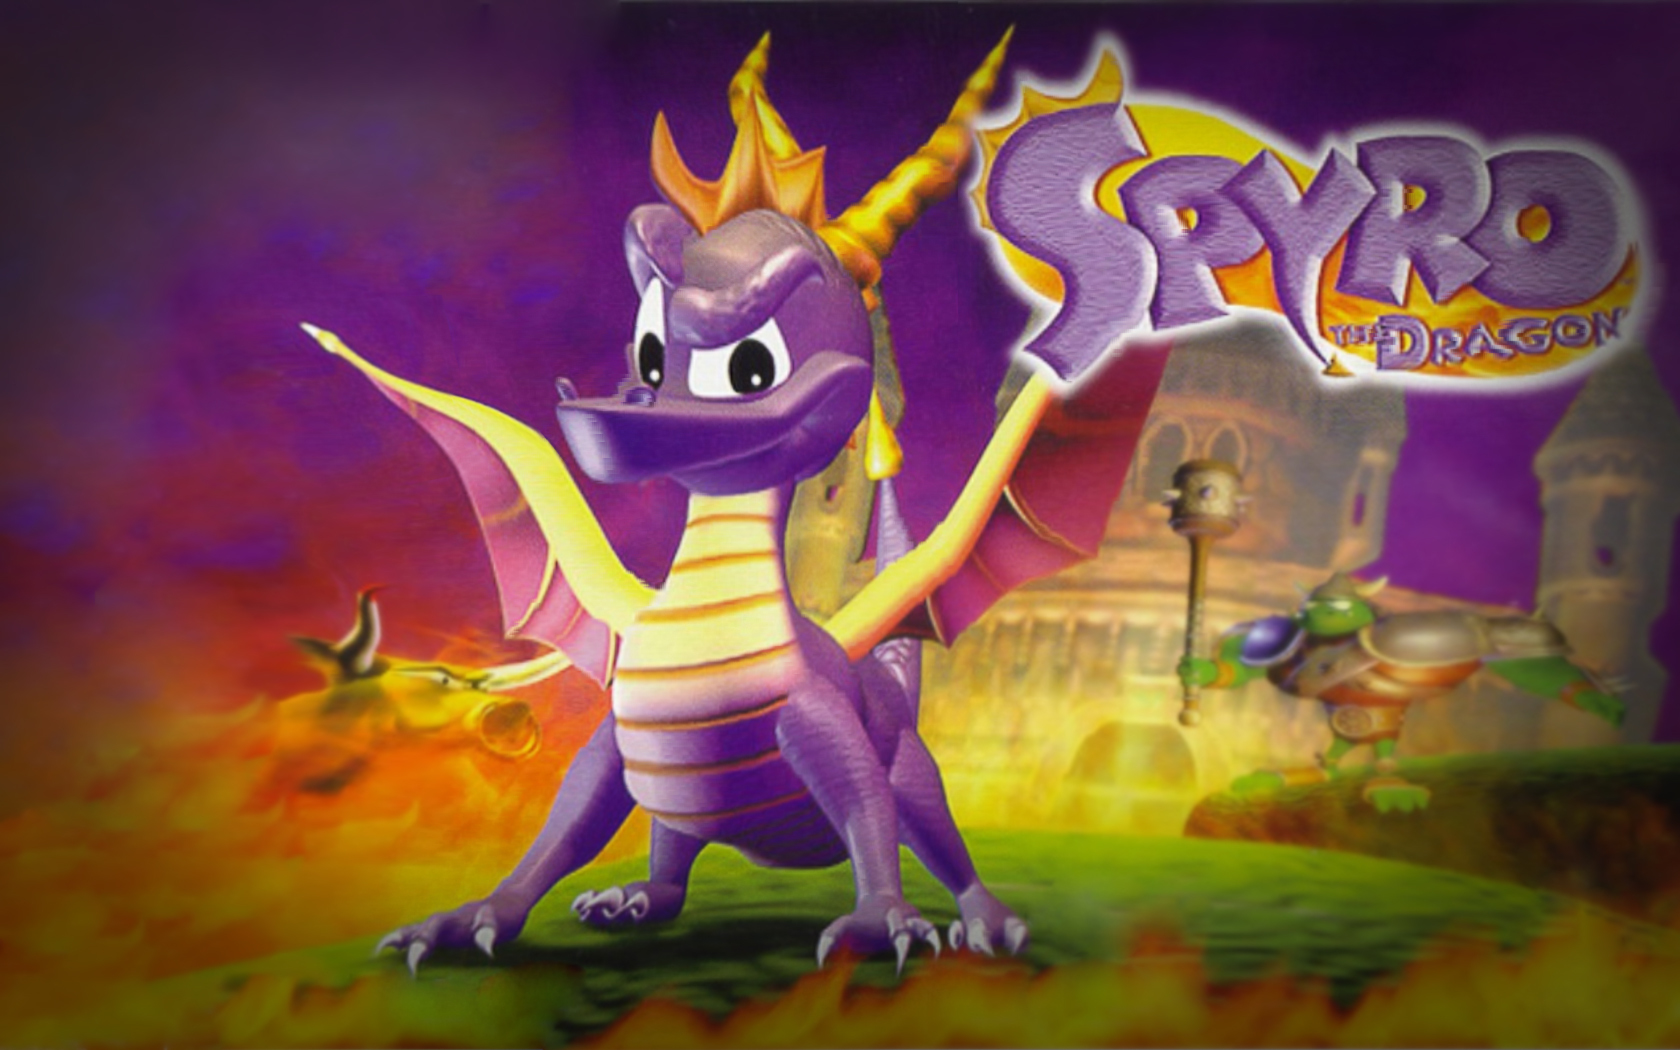 Spyro the Dragon' trilogy remaster reportedly coming to PS4 this year – BGR